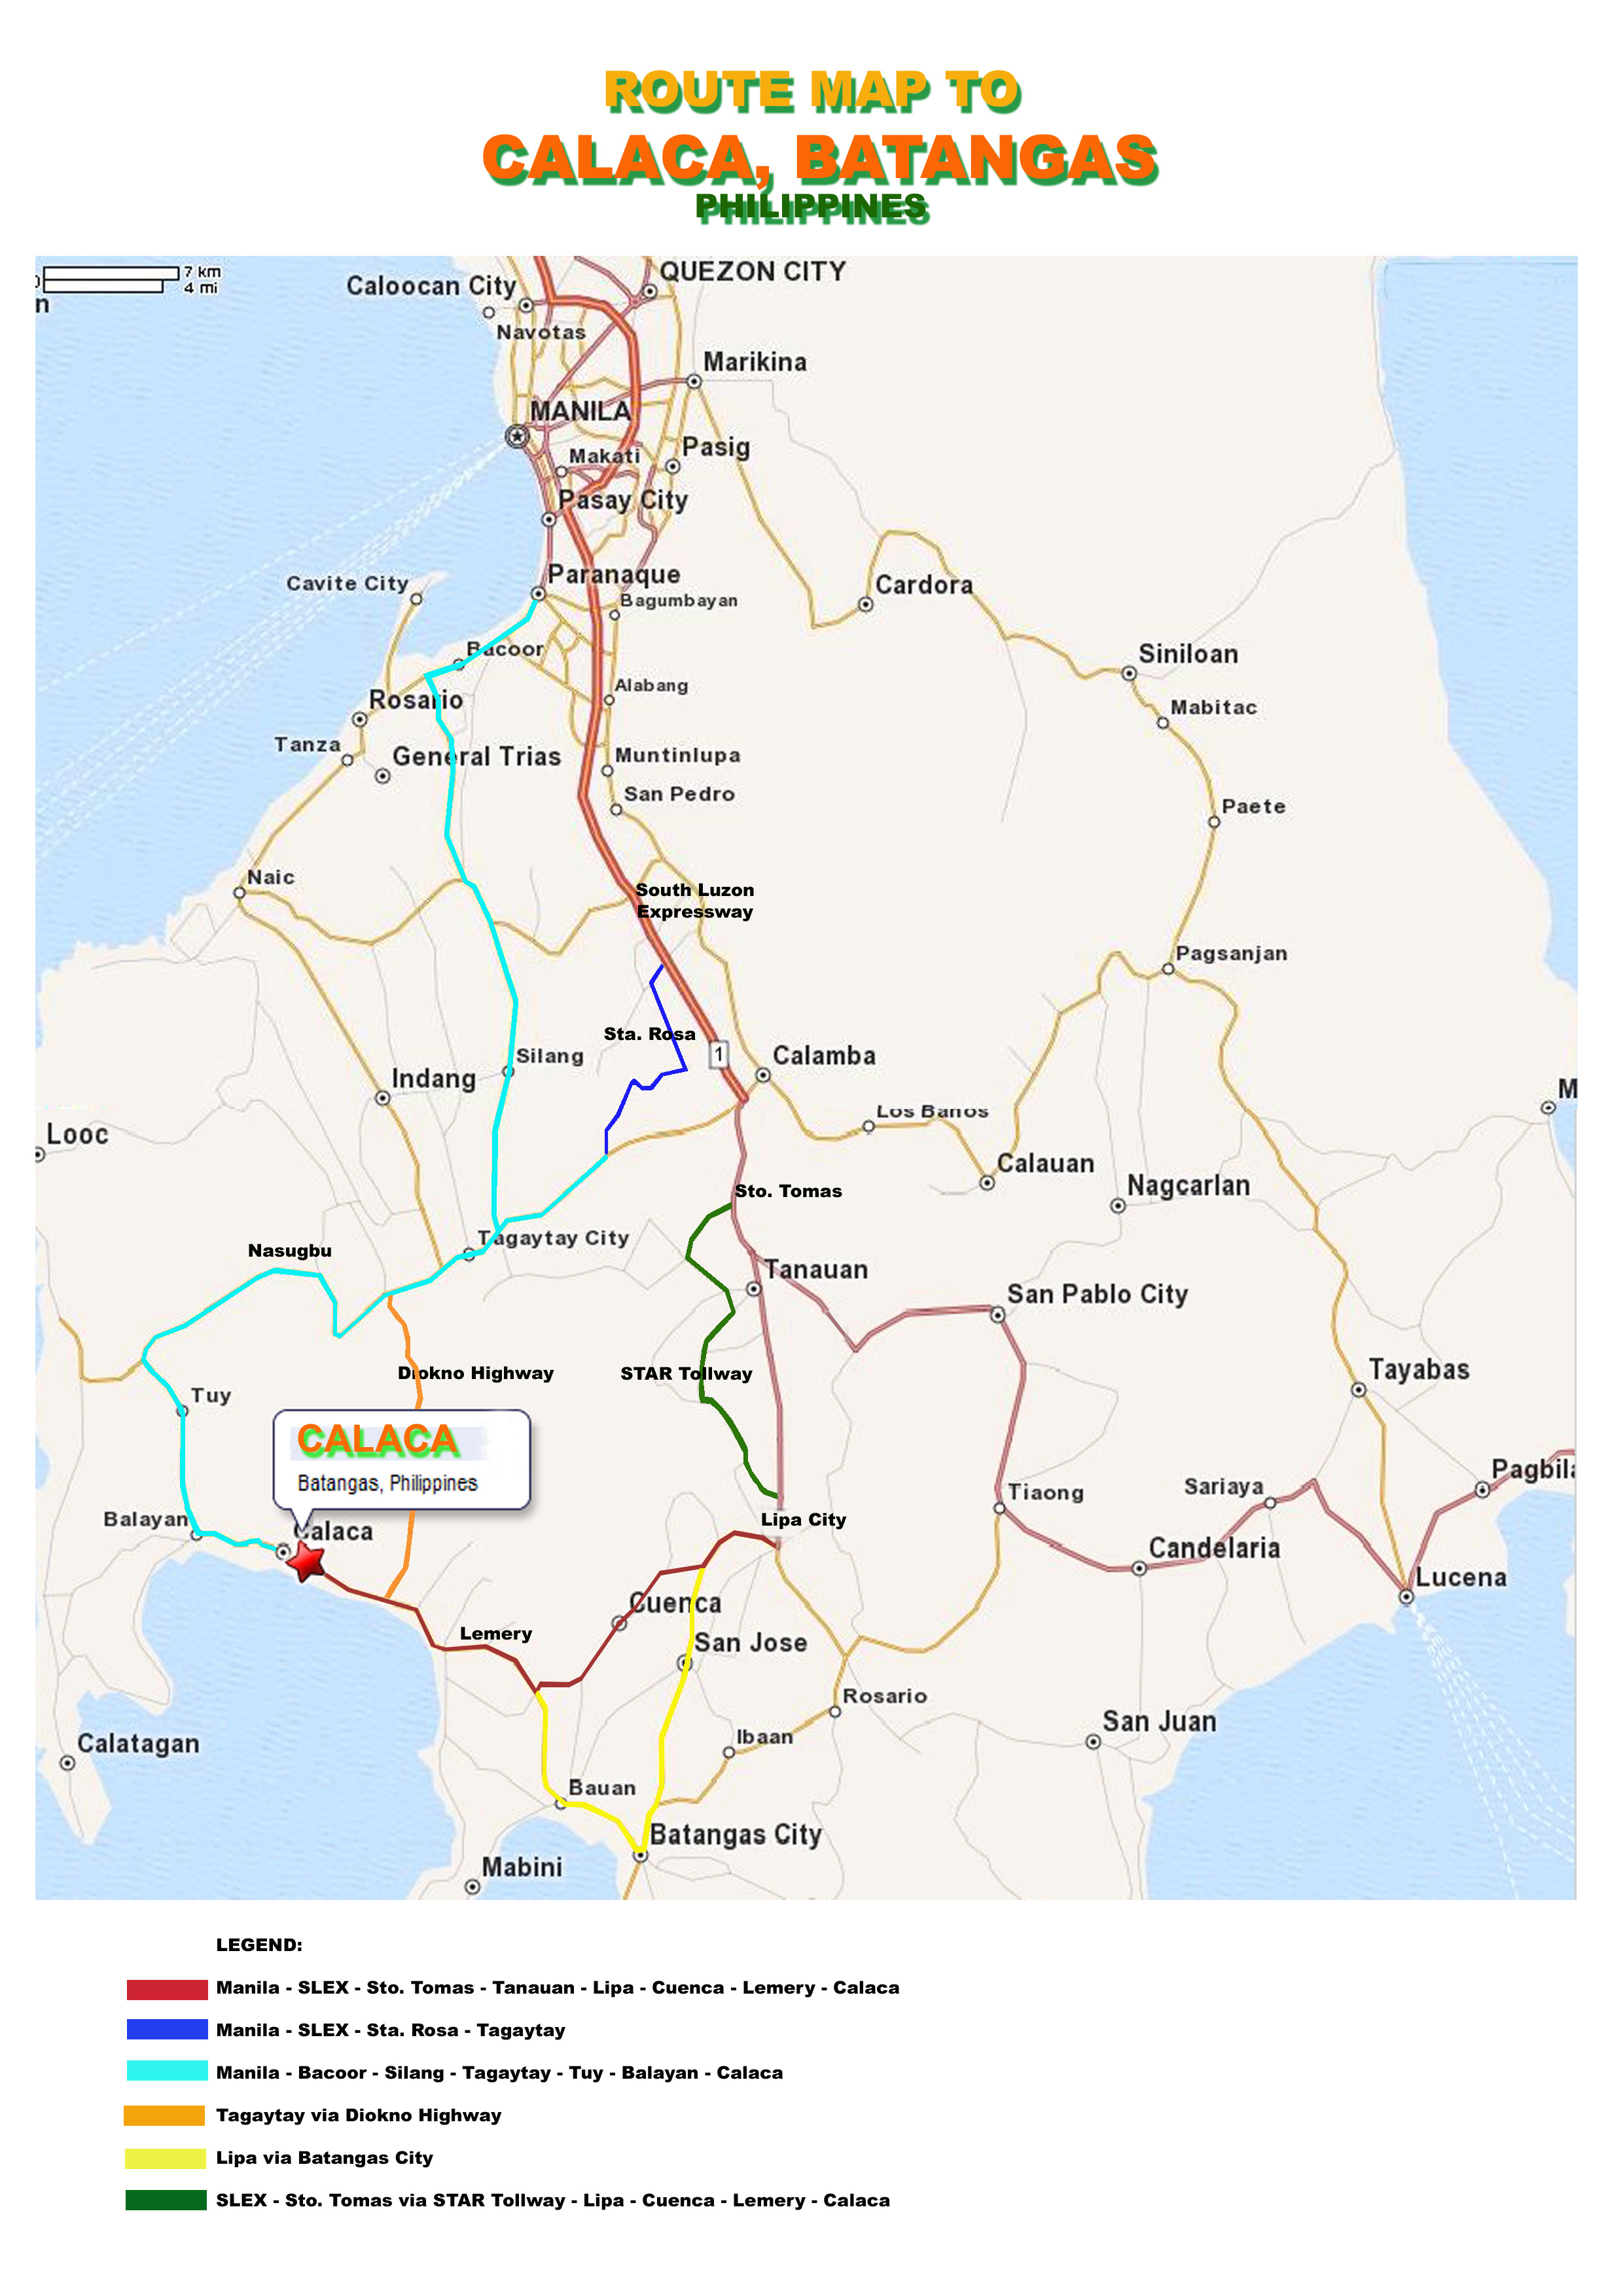 calaca_route_map.jpg